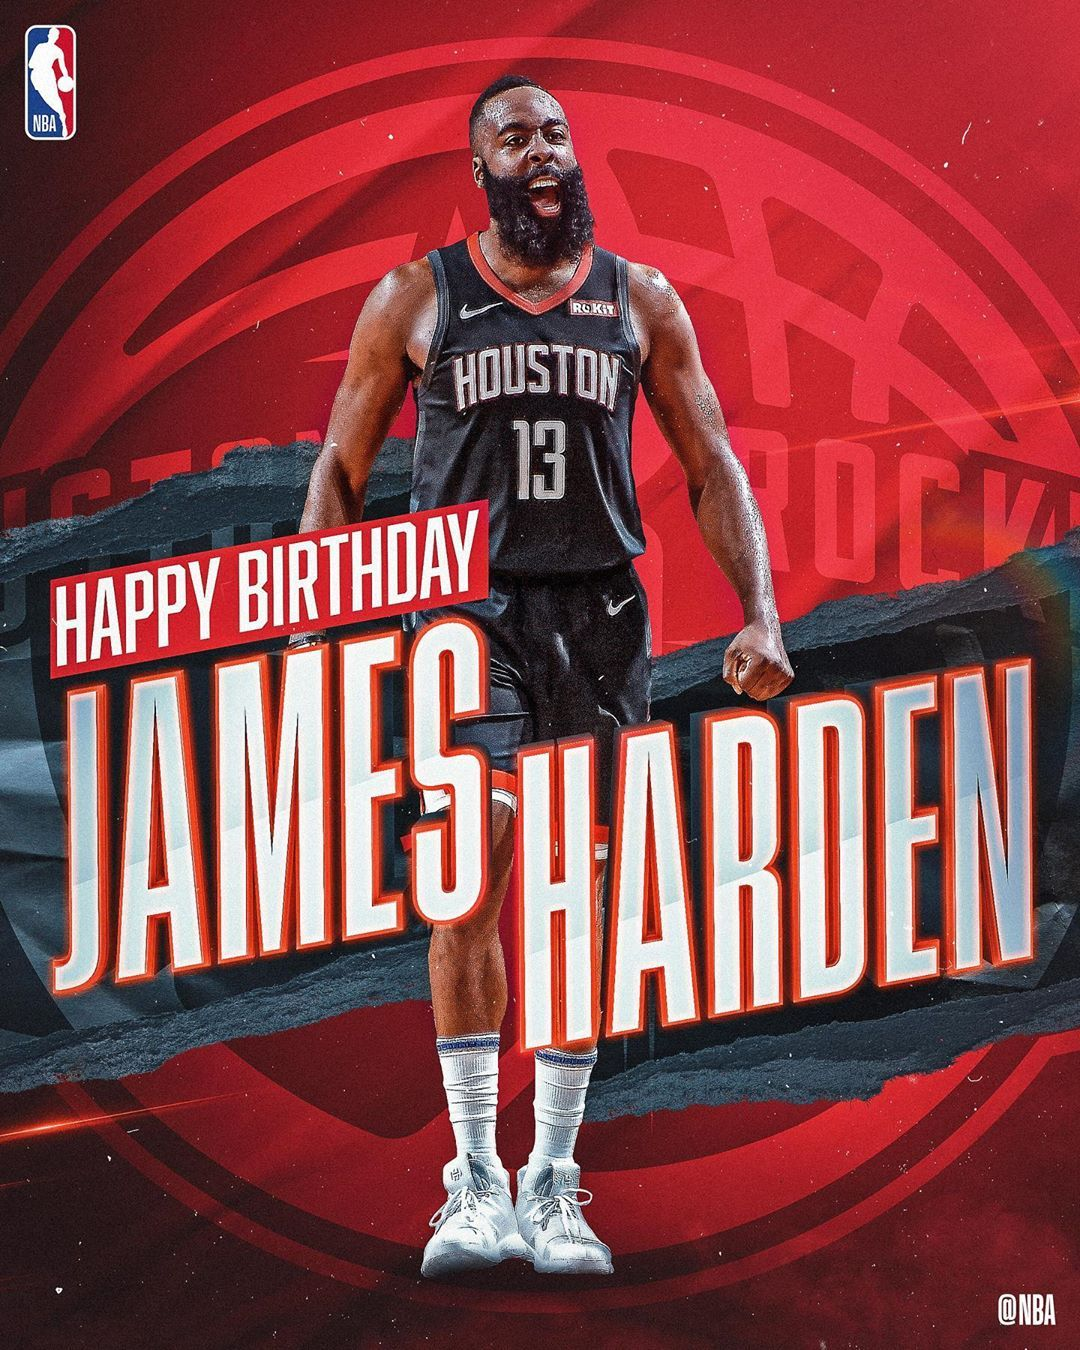 NBA Join us in wishing jharden13 of the houstonrockets